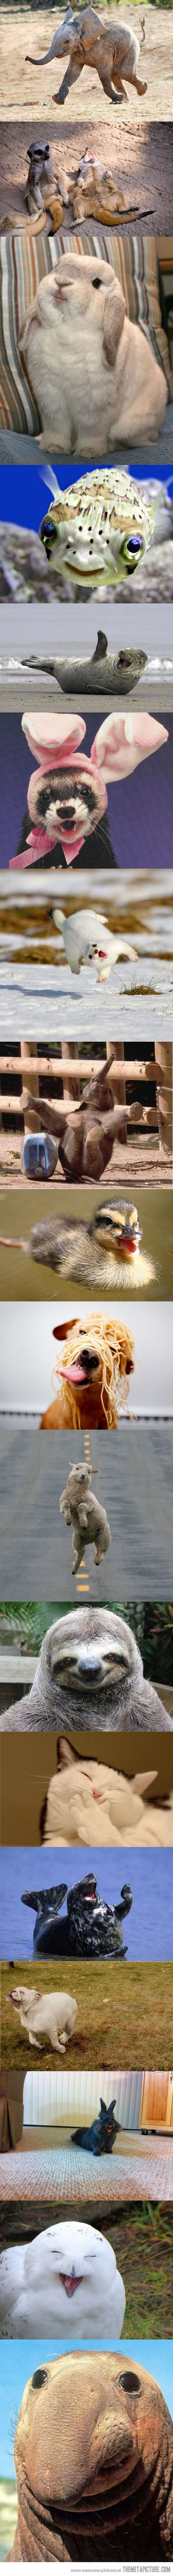 Happiest animals in the world. I wish I could be that happy all of the time.